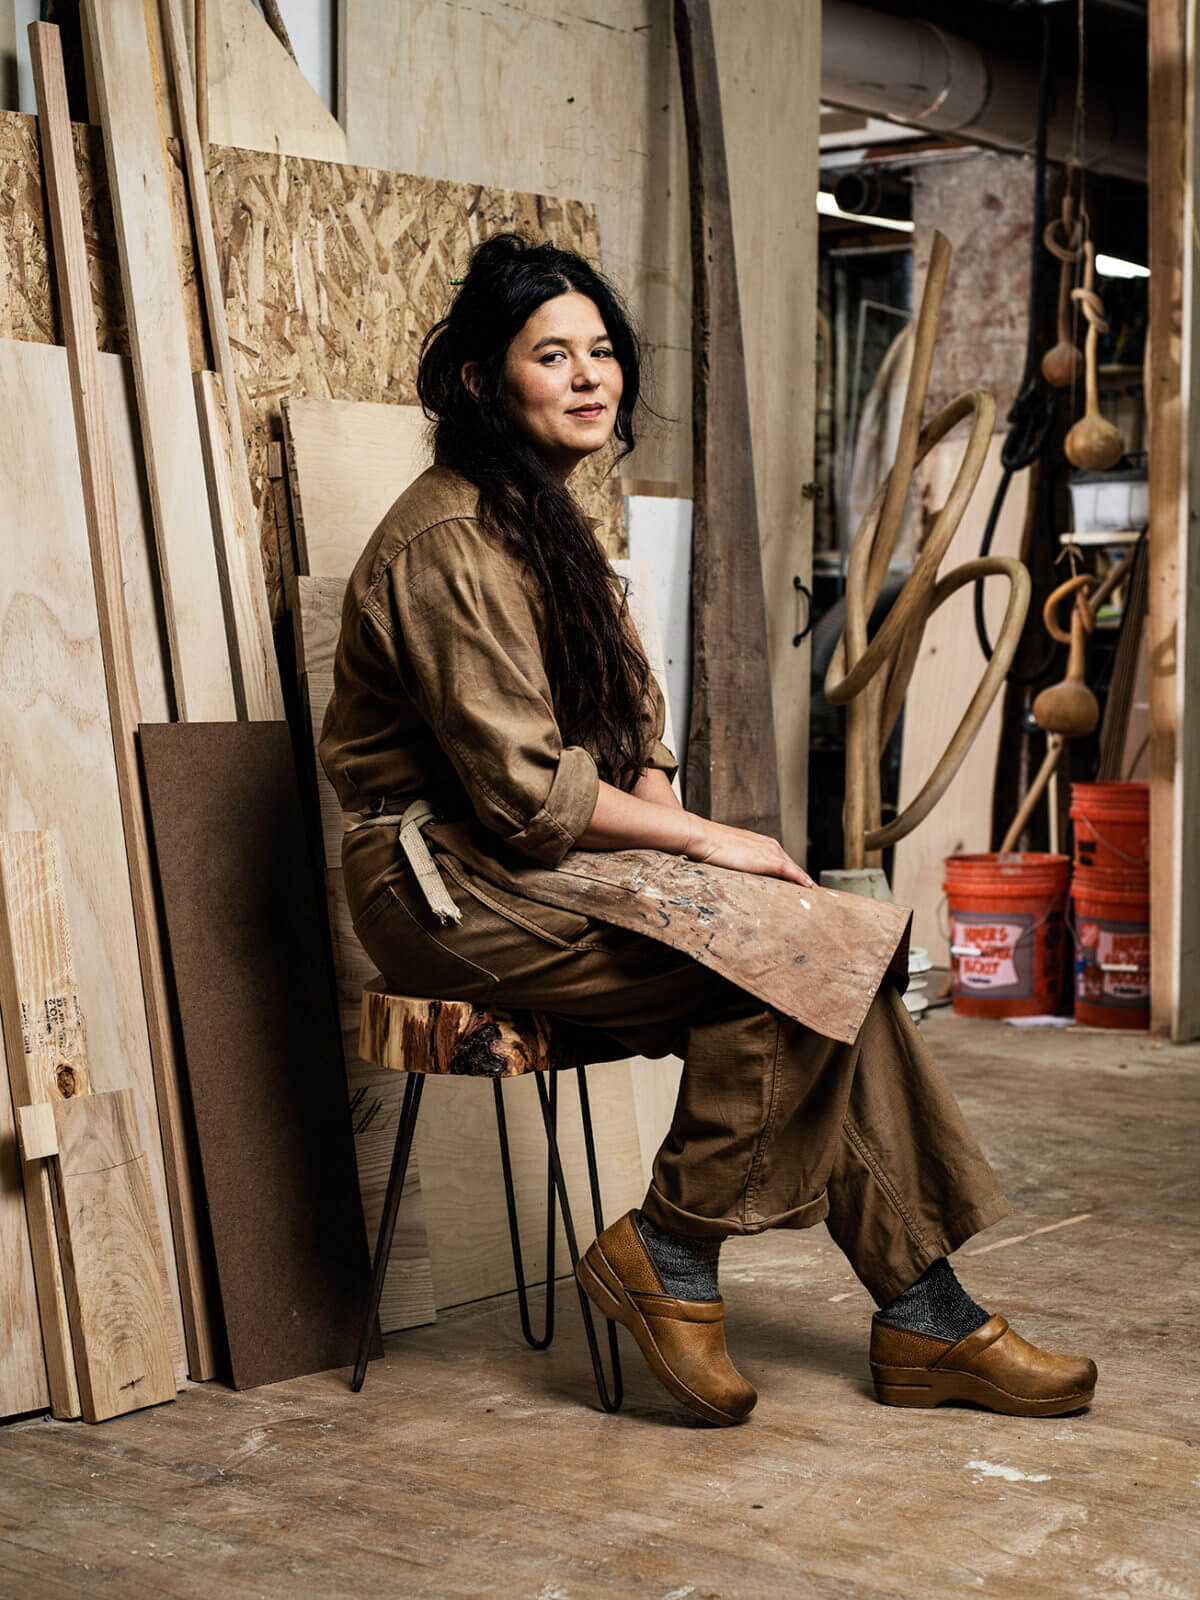 Portrait of artist Katie Gong in her wood shop